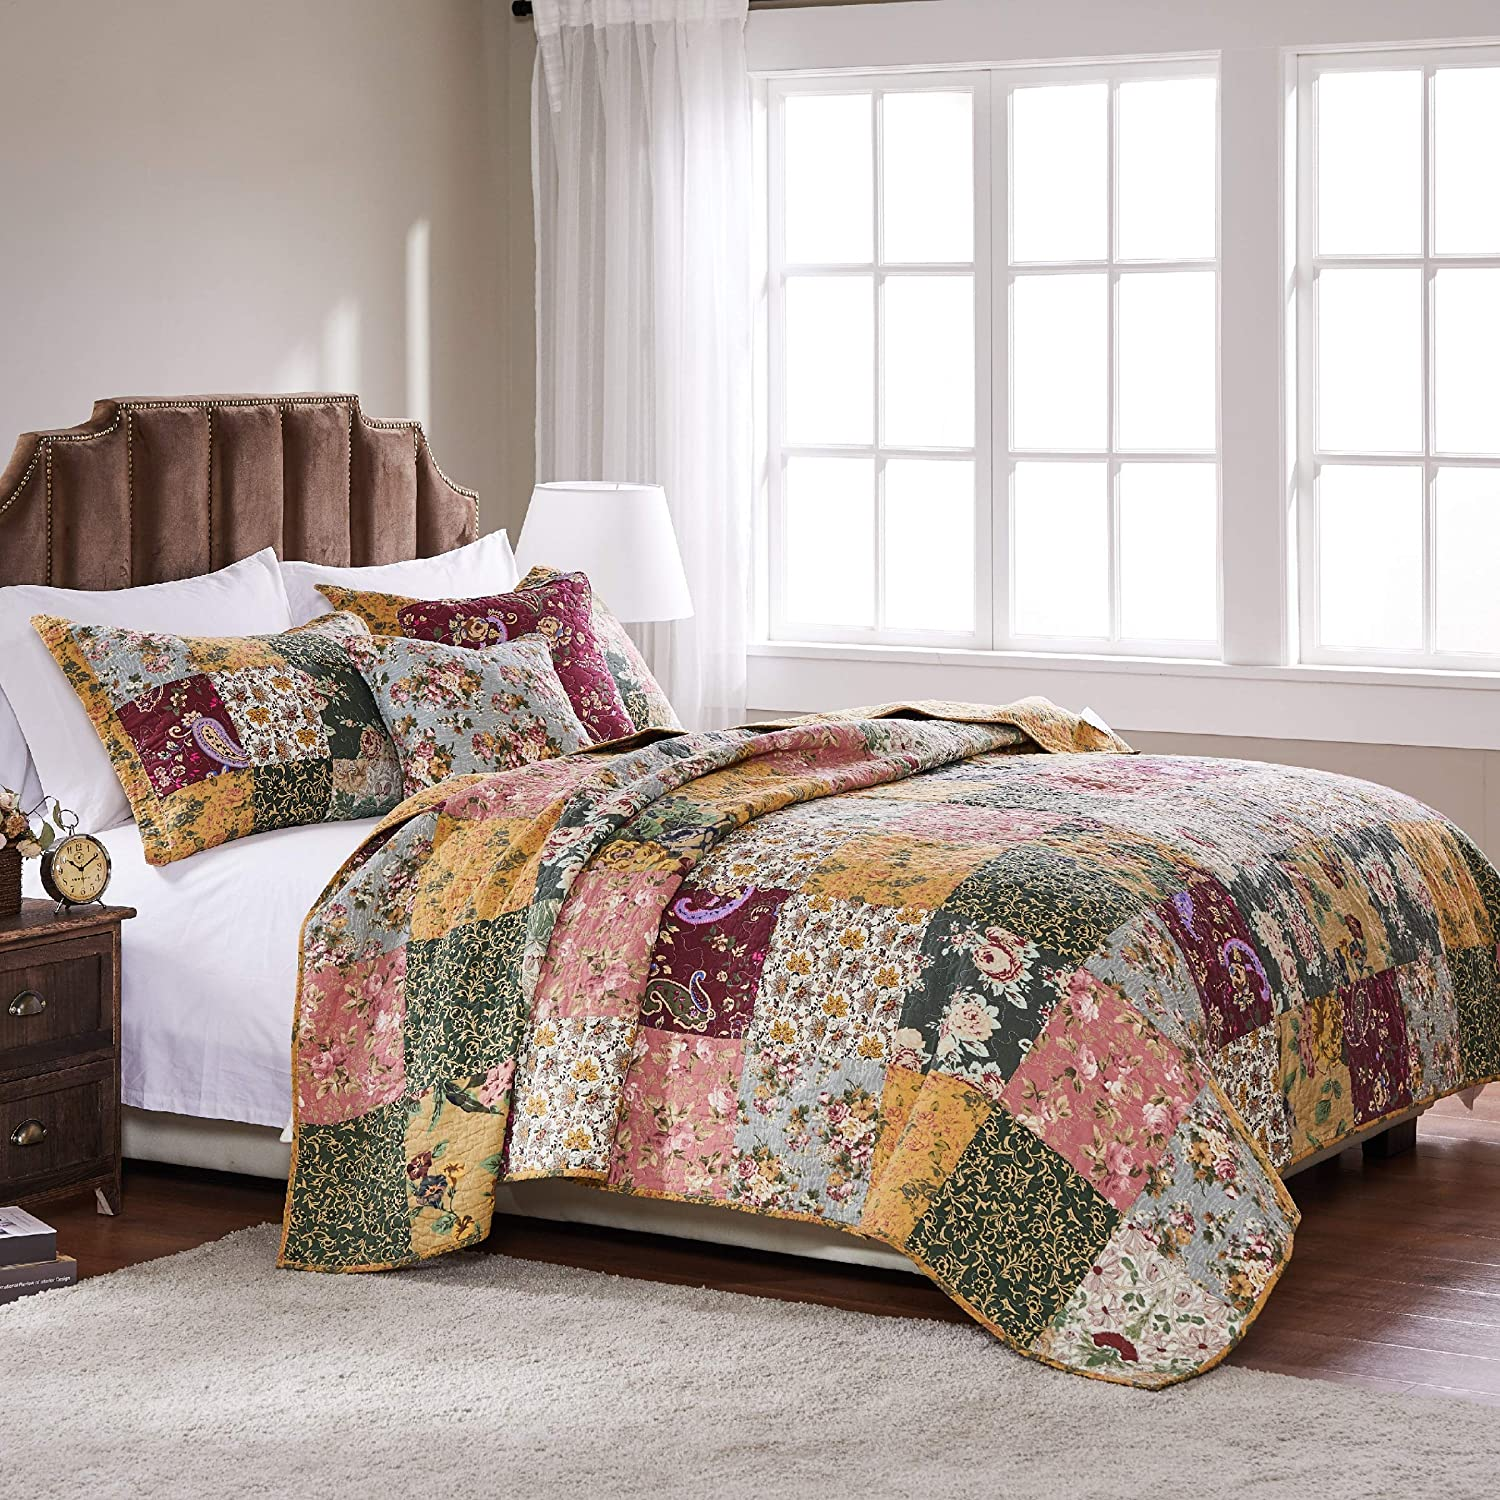 Pillow Greenland Home Fashions Antique Chic Quilt Set Includes Bonus 16 in